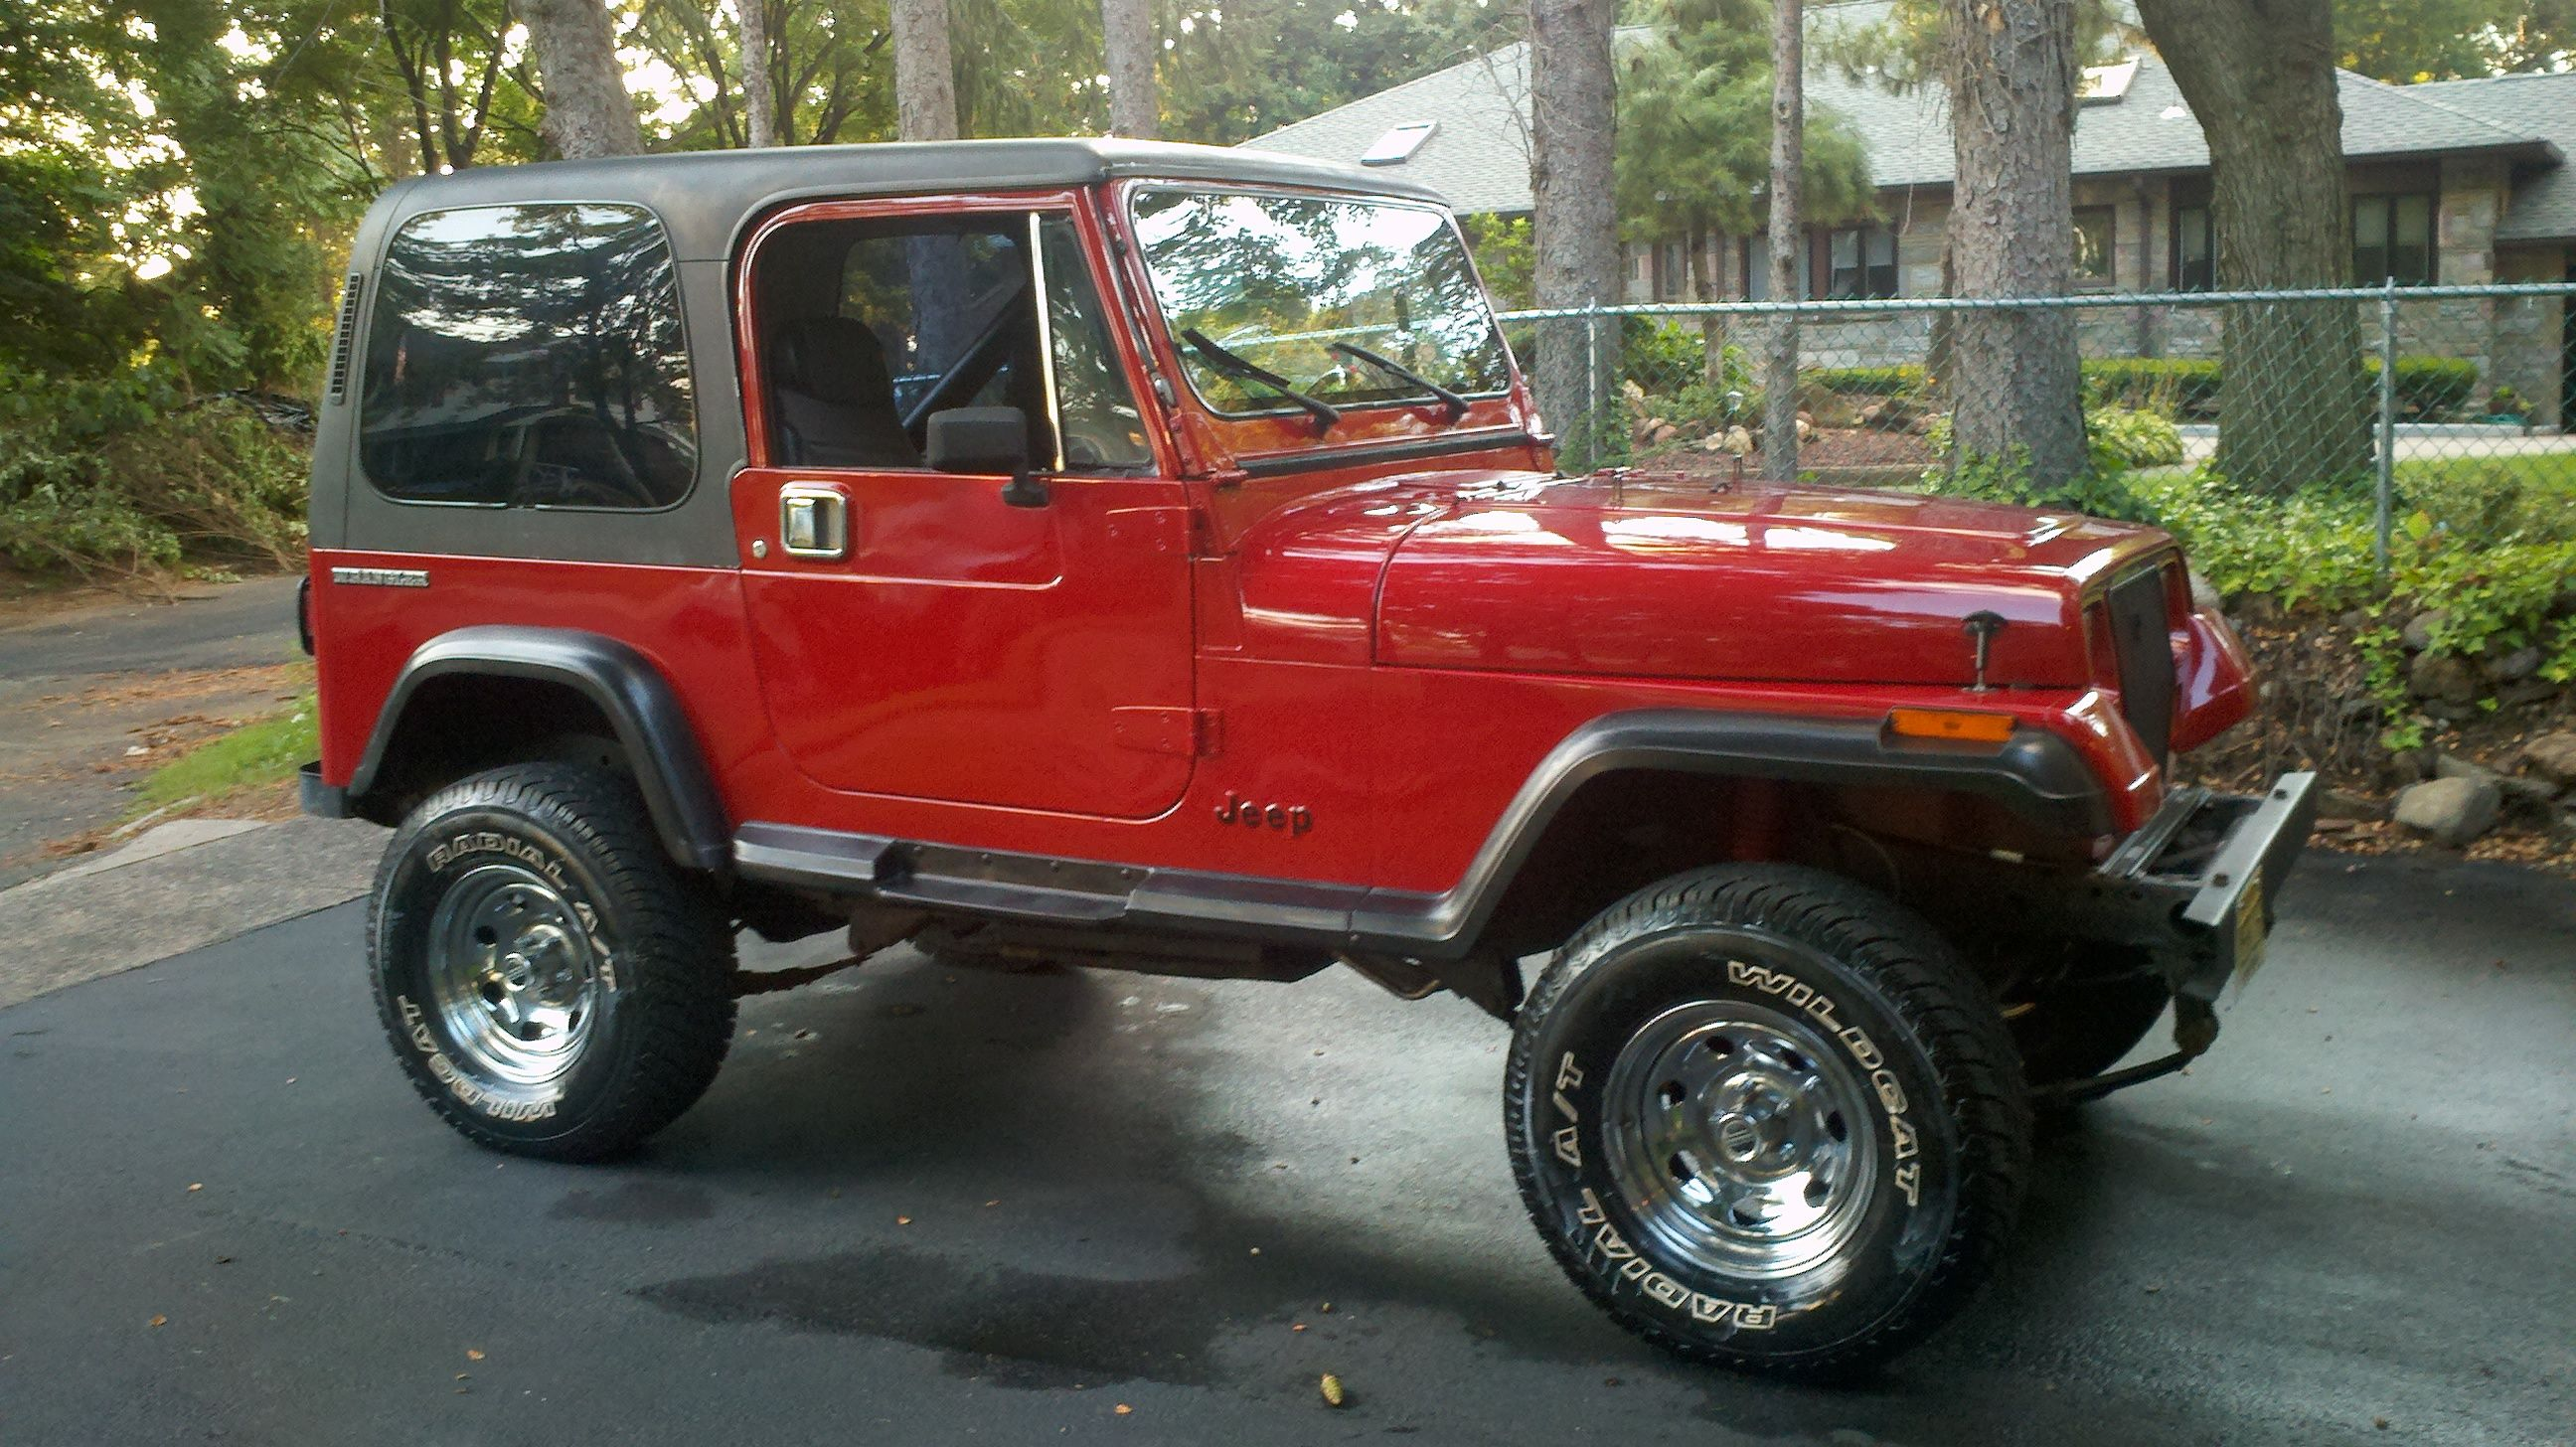 1987 jeep wrangler yj i want mine green or black with a soft top